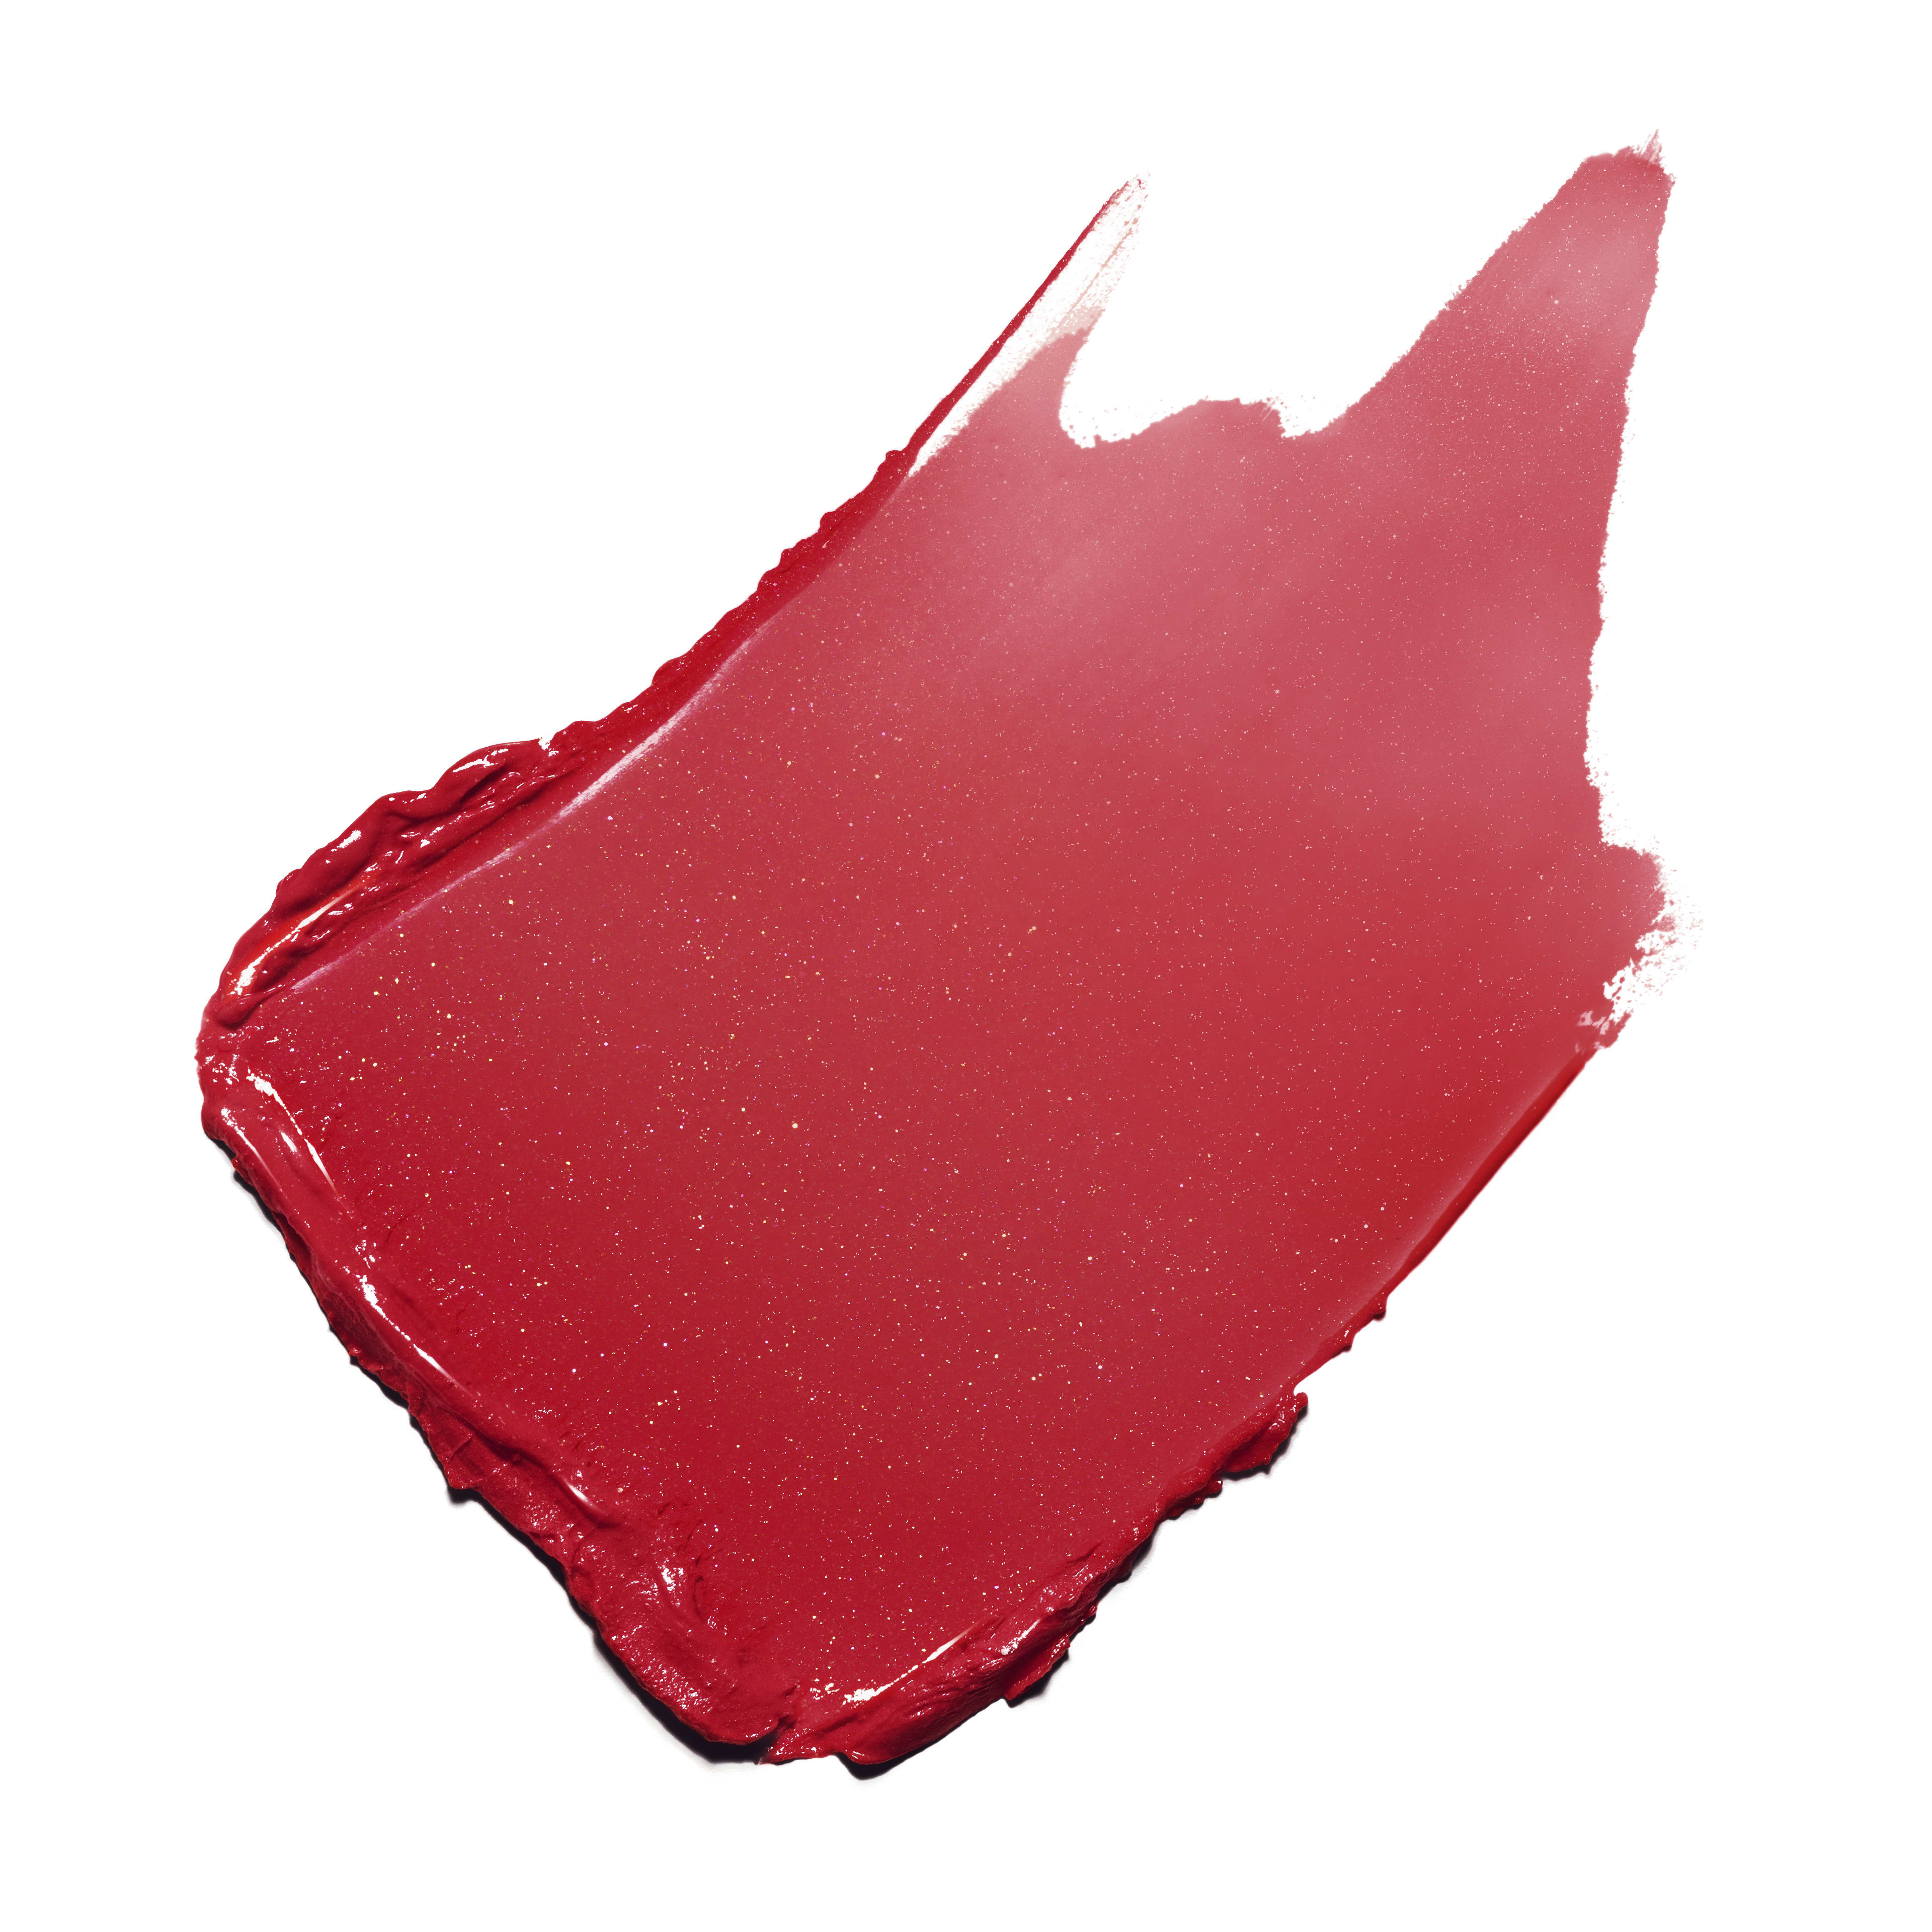 ROUGE COCO FLASH - makeup - 3g - Basic texture view